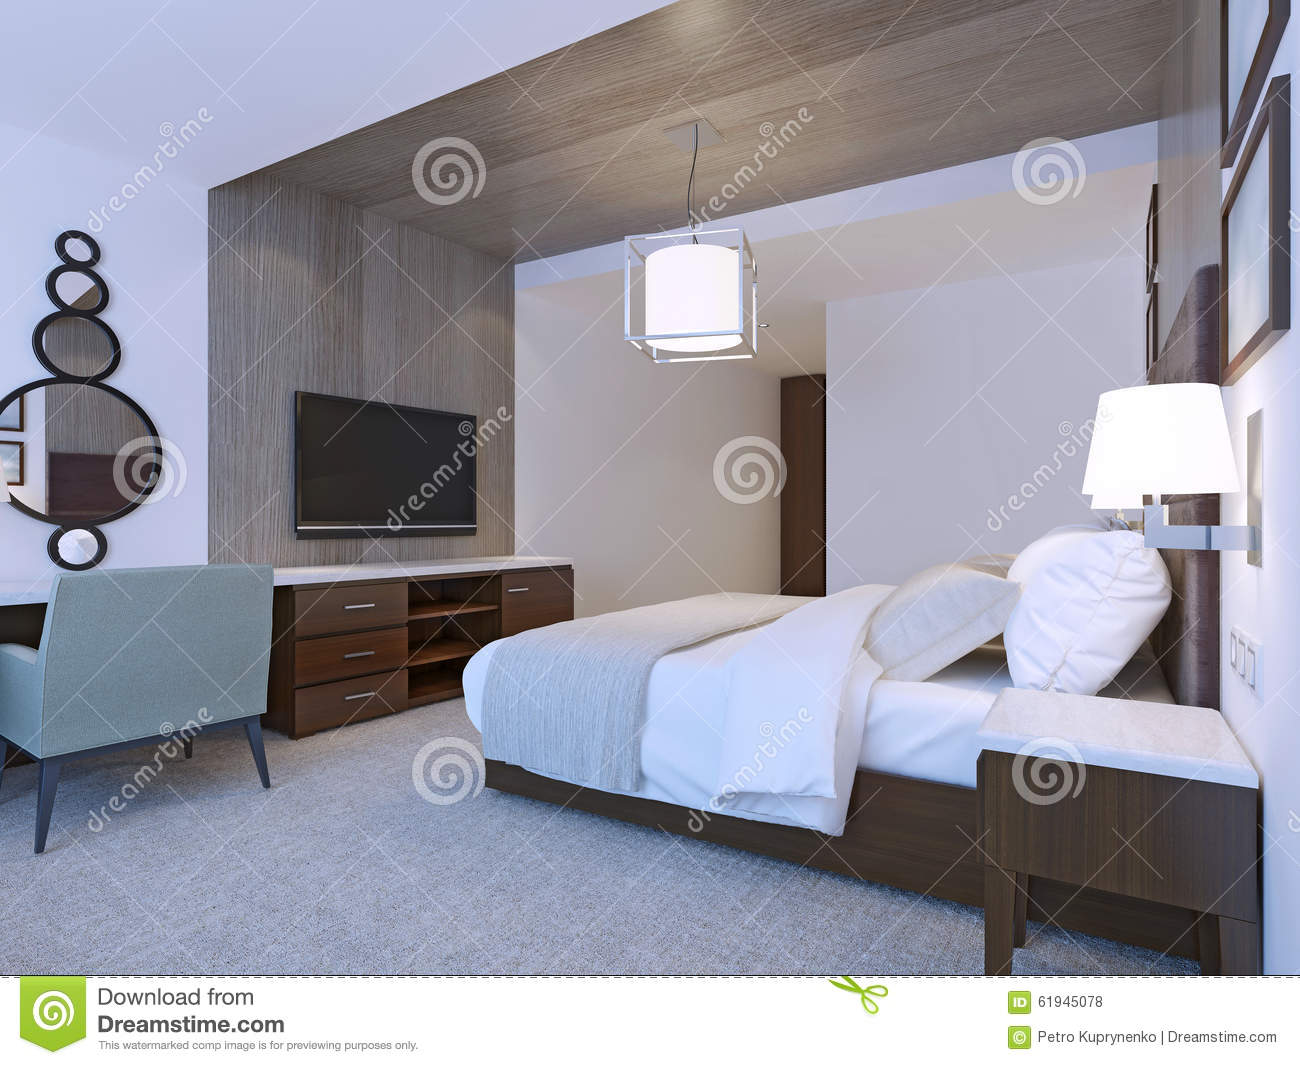 Hotel room with minimalist design stock photo image for Hotel minimalista